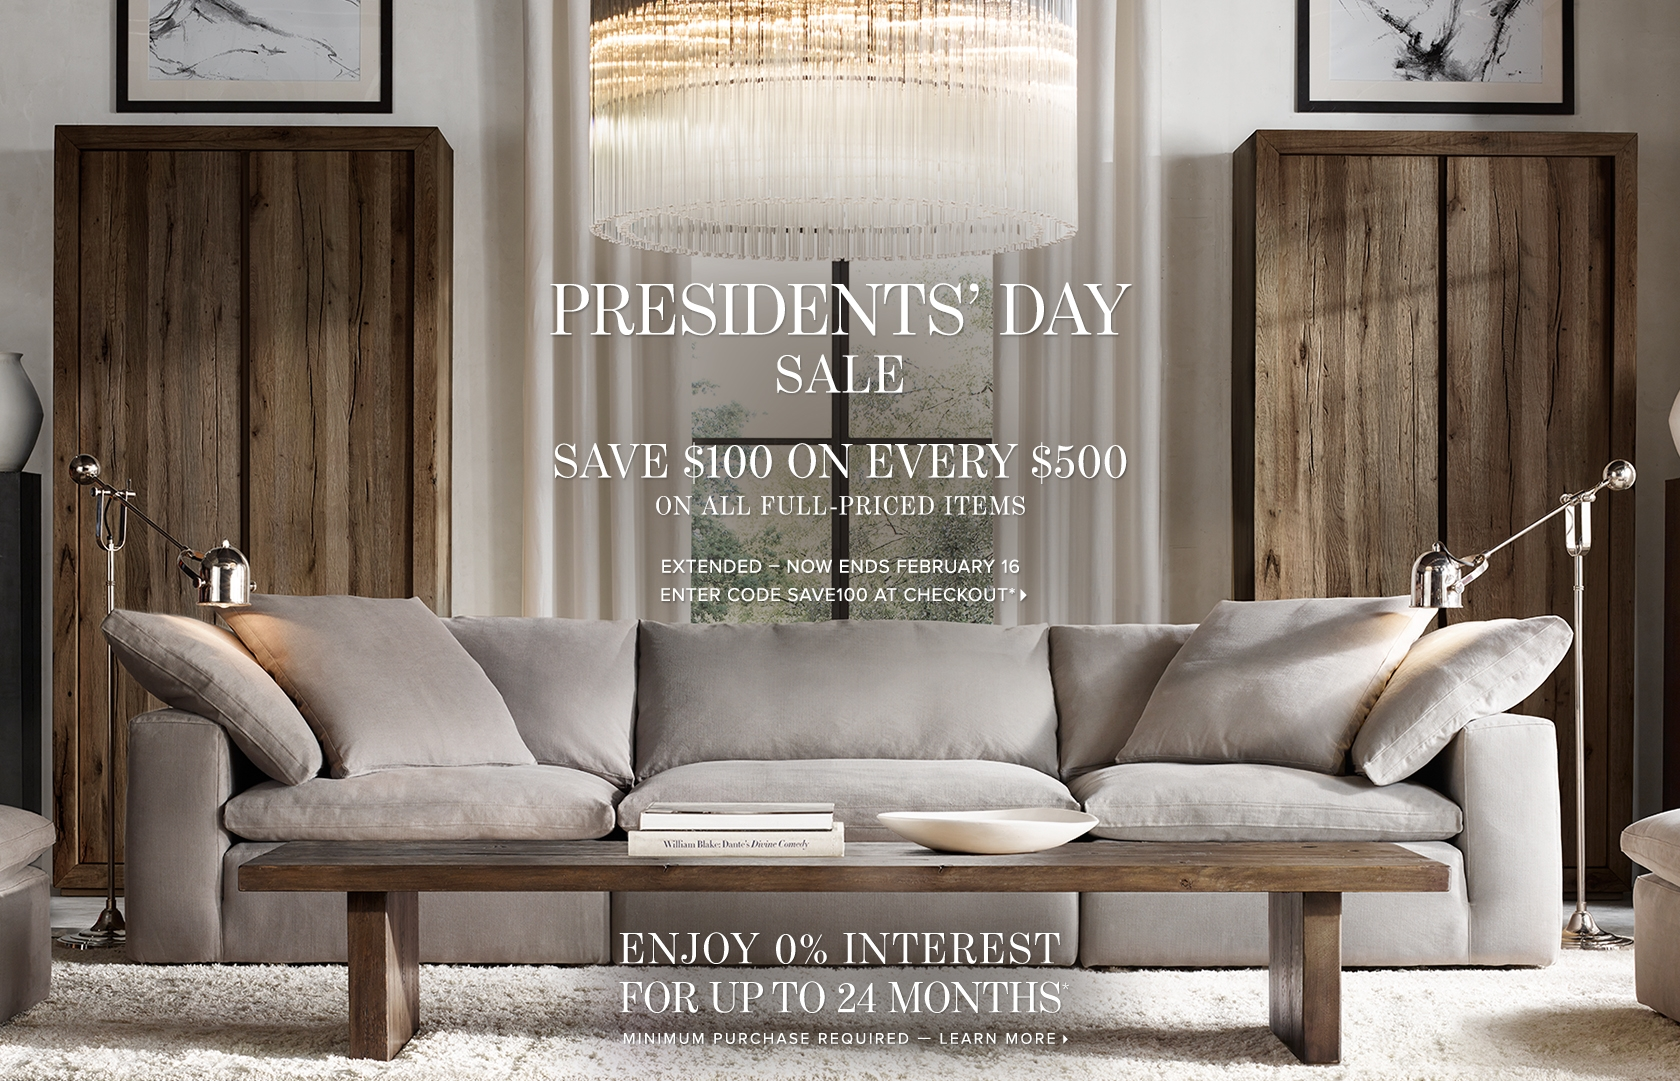 Presidents' Day Sale - Save $100 on Every $500